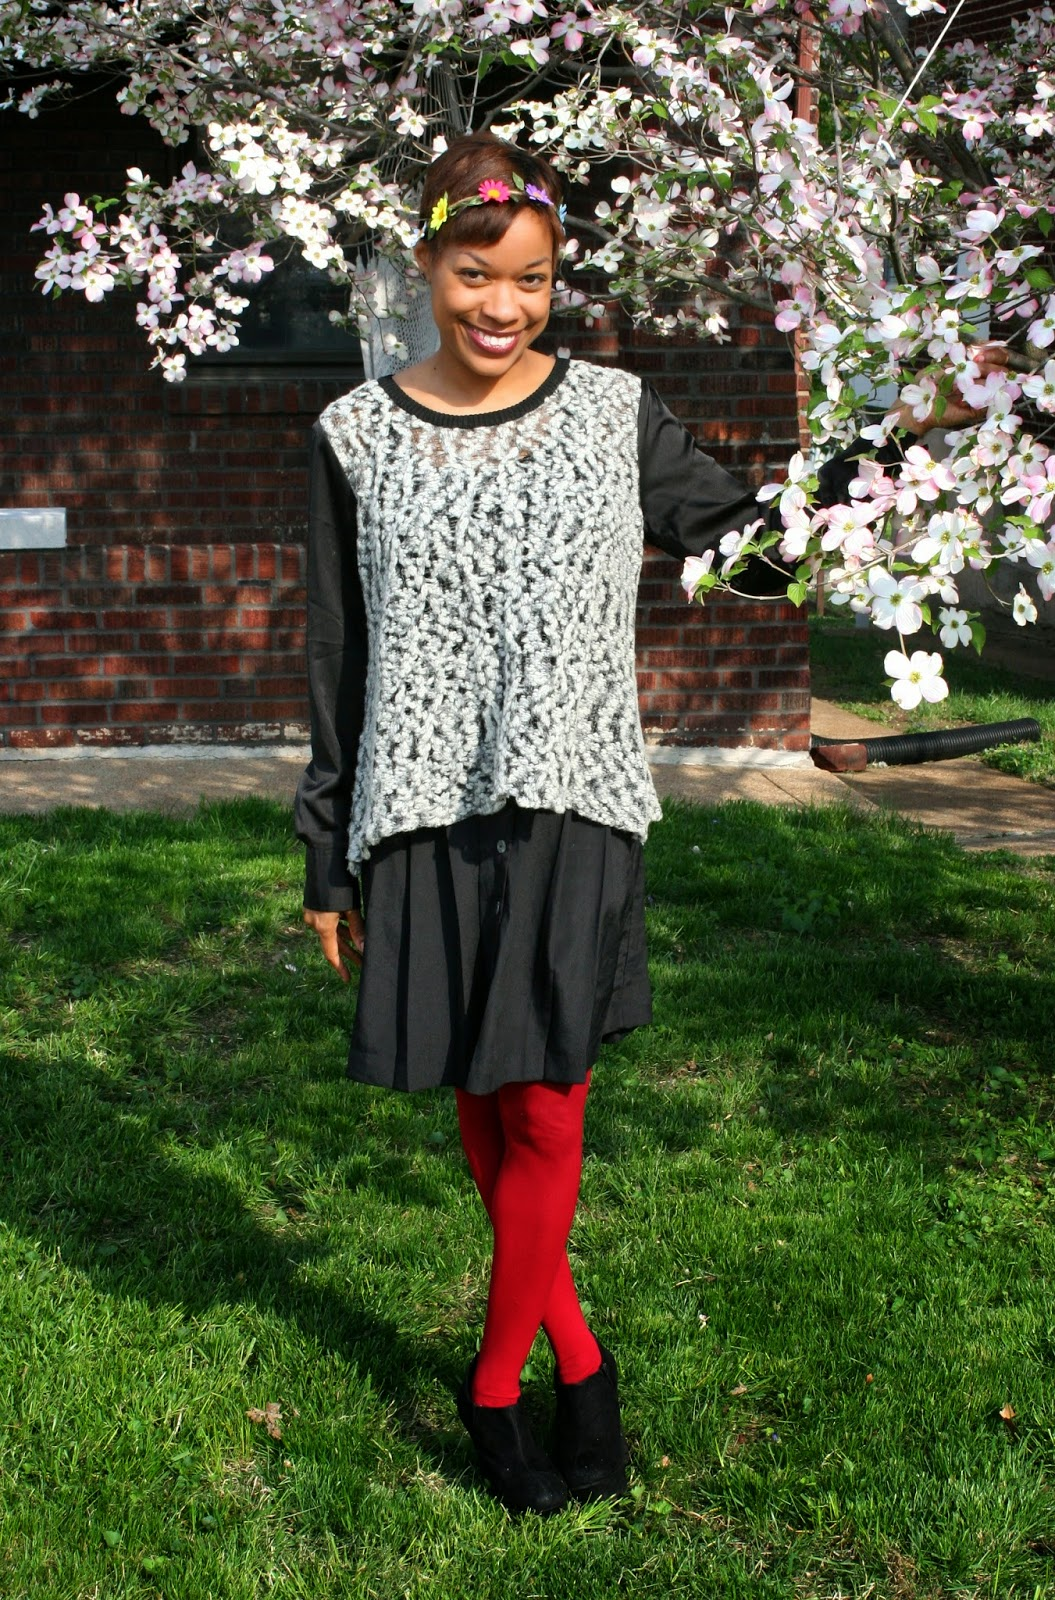 floral headband, black skirt and tights